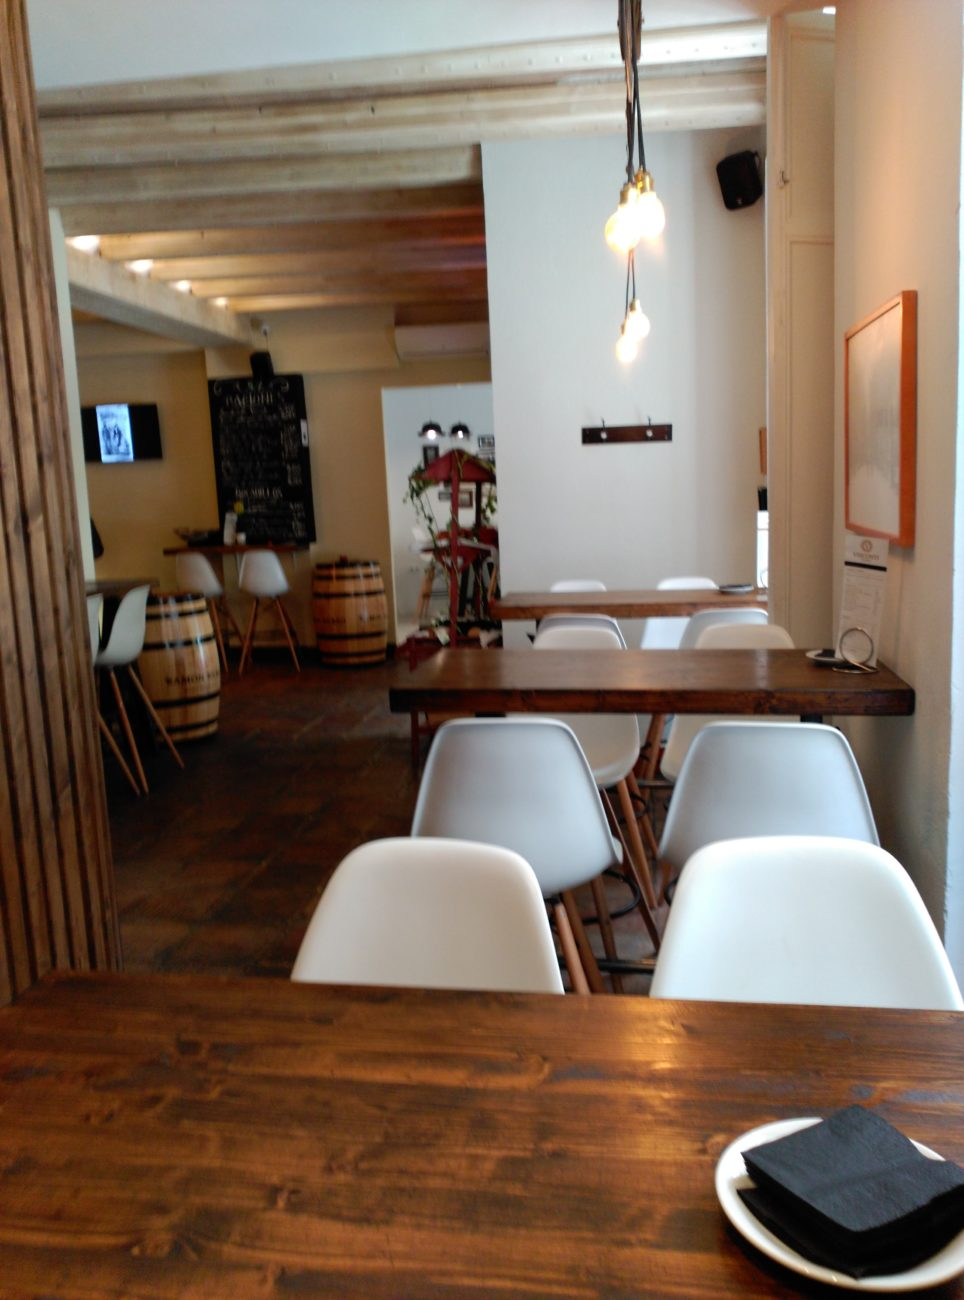 Vista Zona Gastro, Visconti. Decoración de interior Inma Gregori 2015.